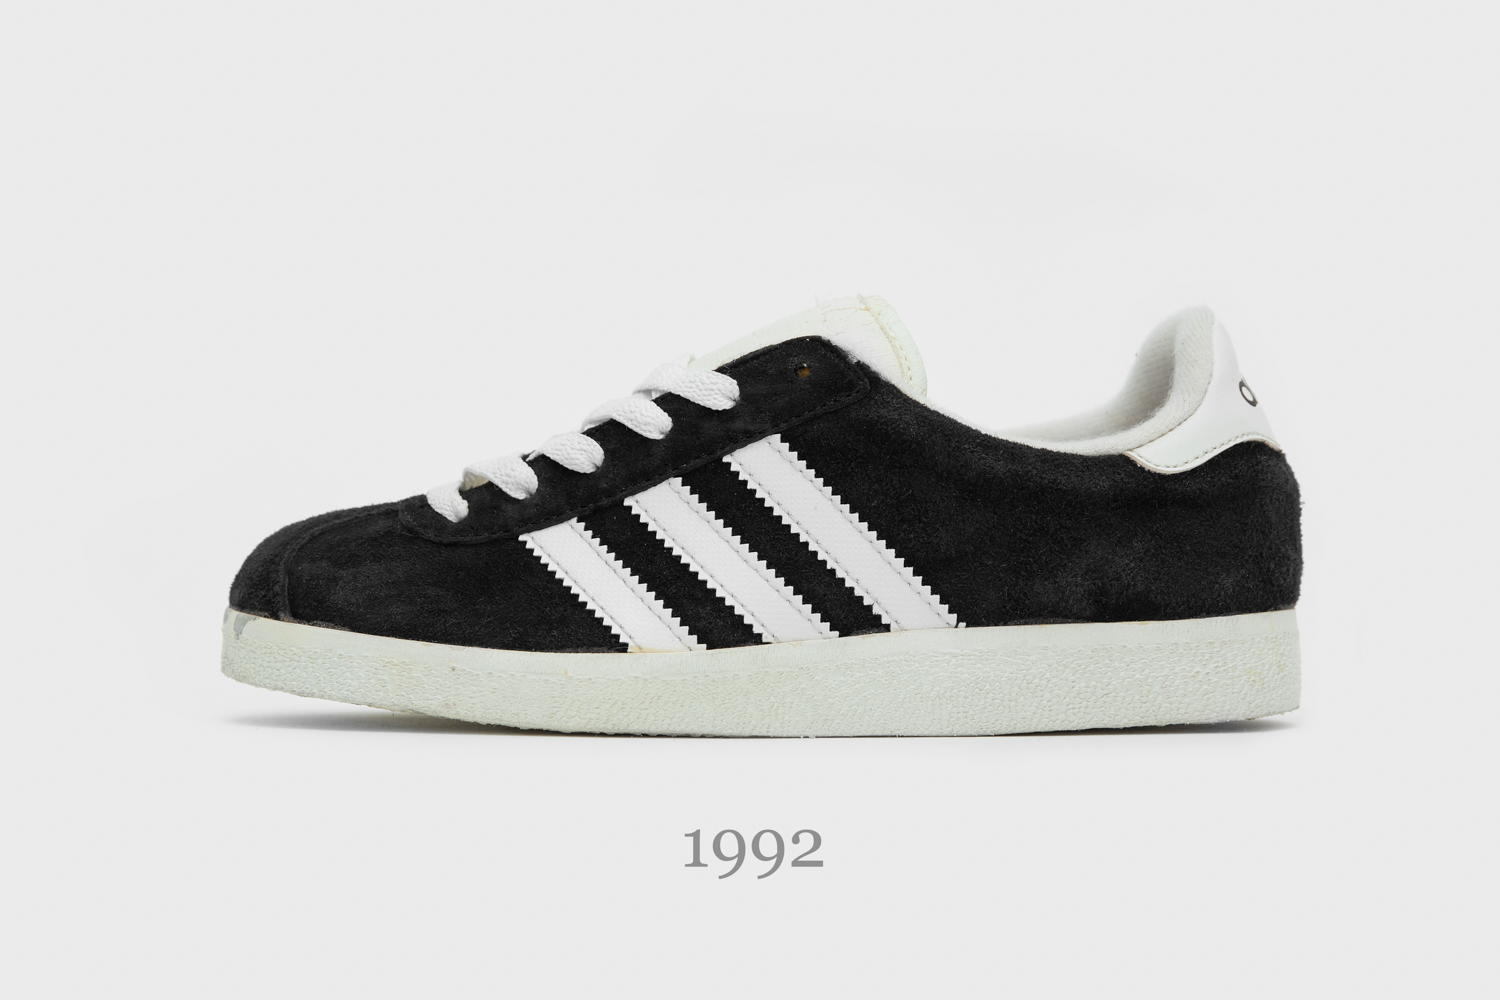 size_HQ_Lockup_adidas_originals_gazelle-2